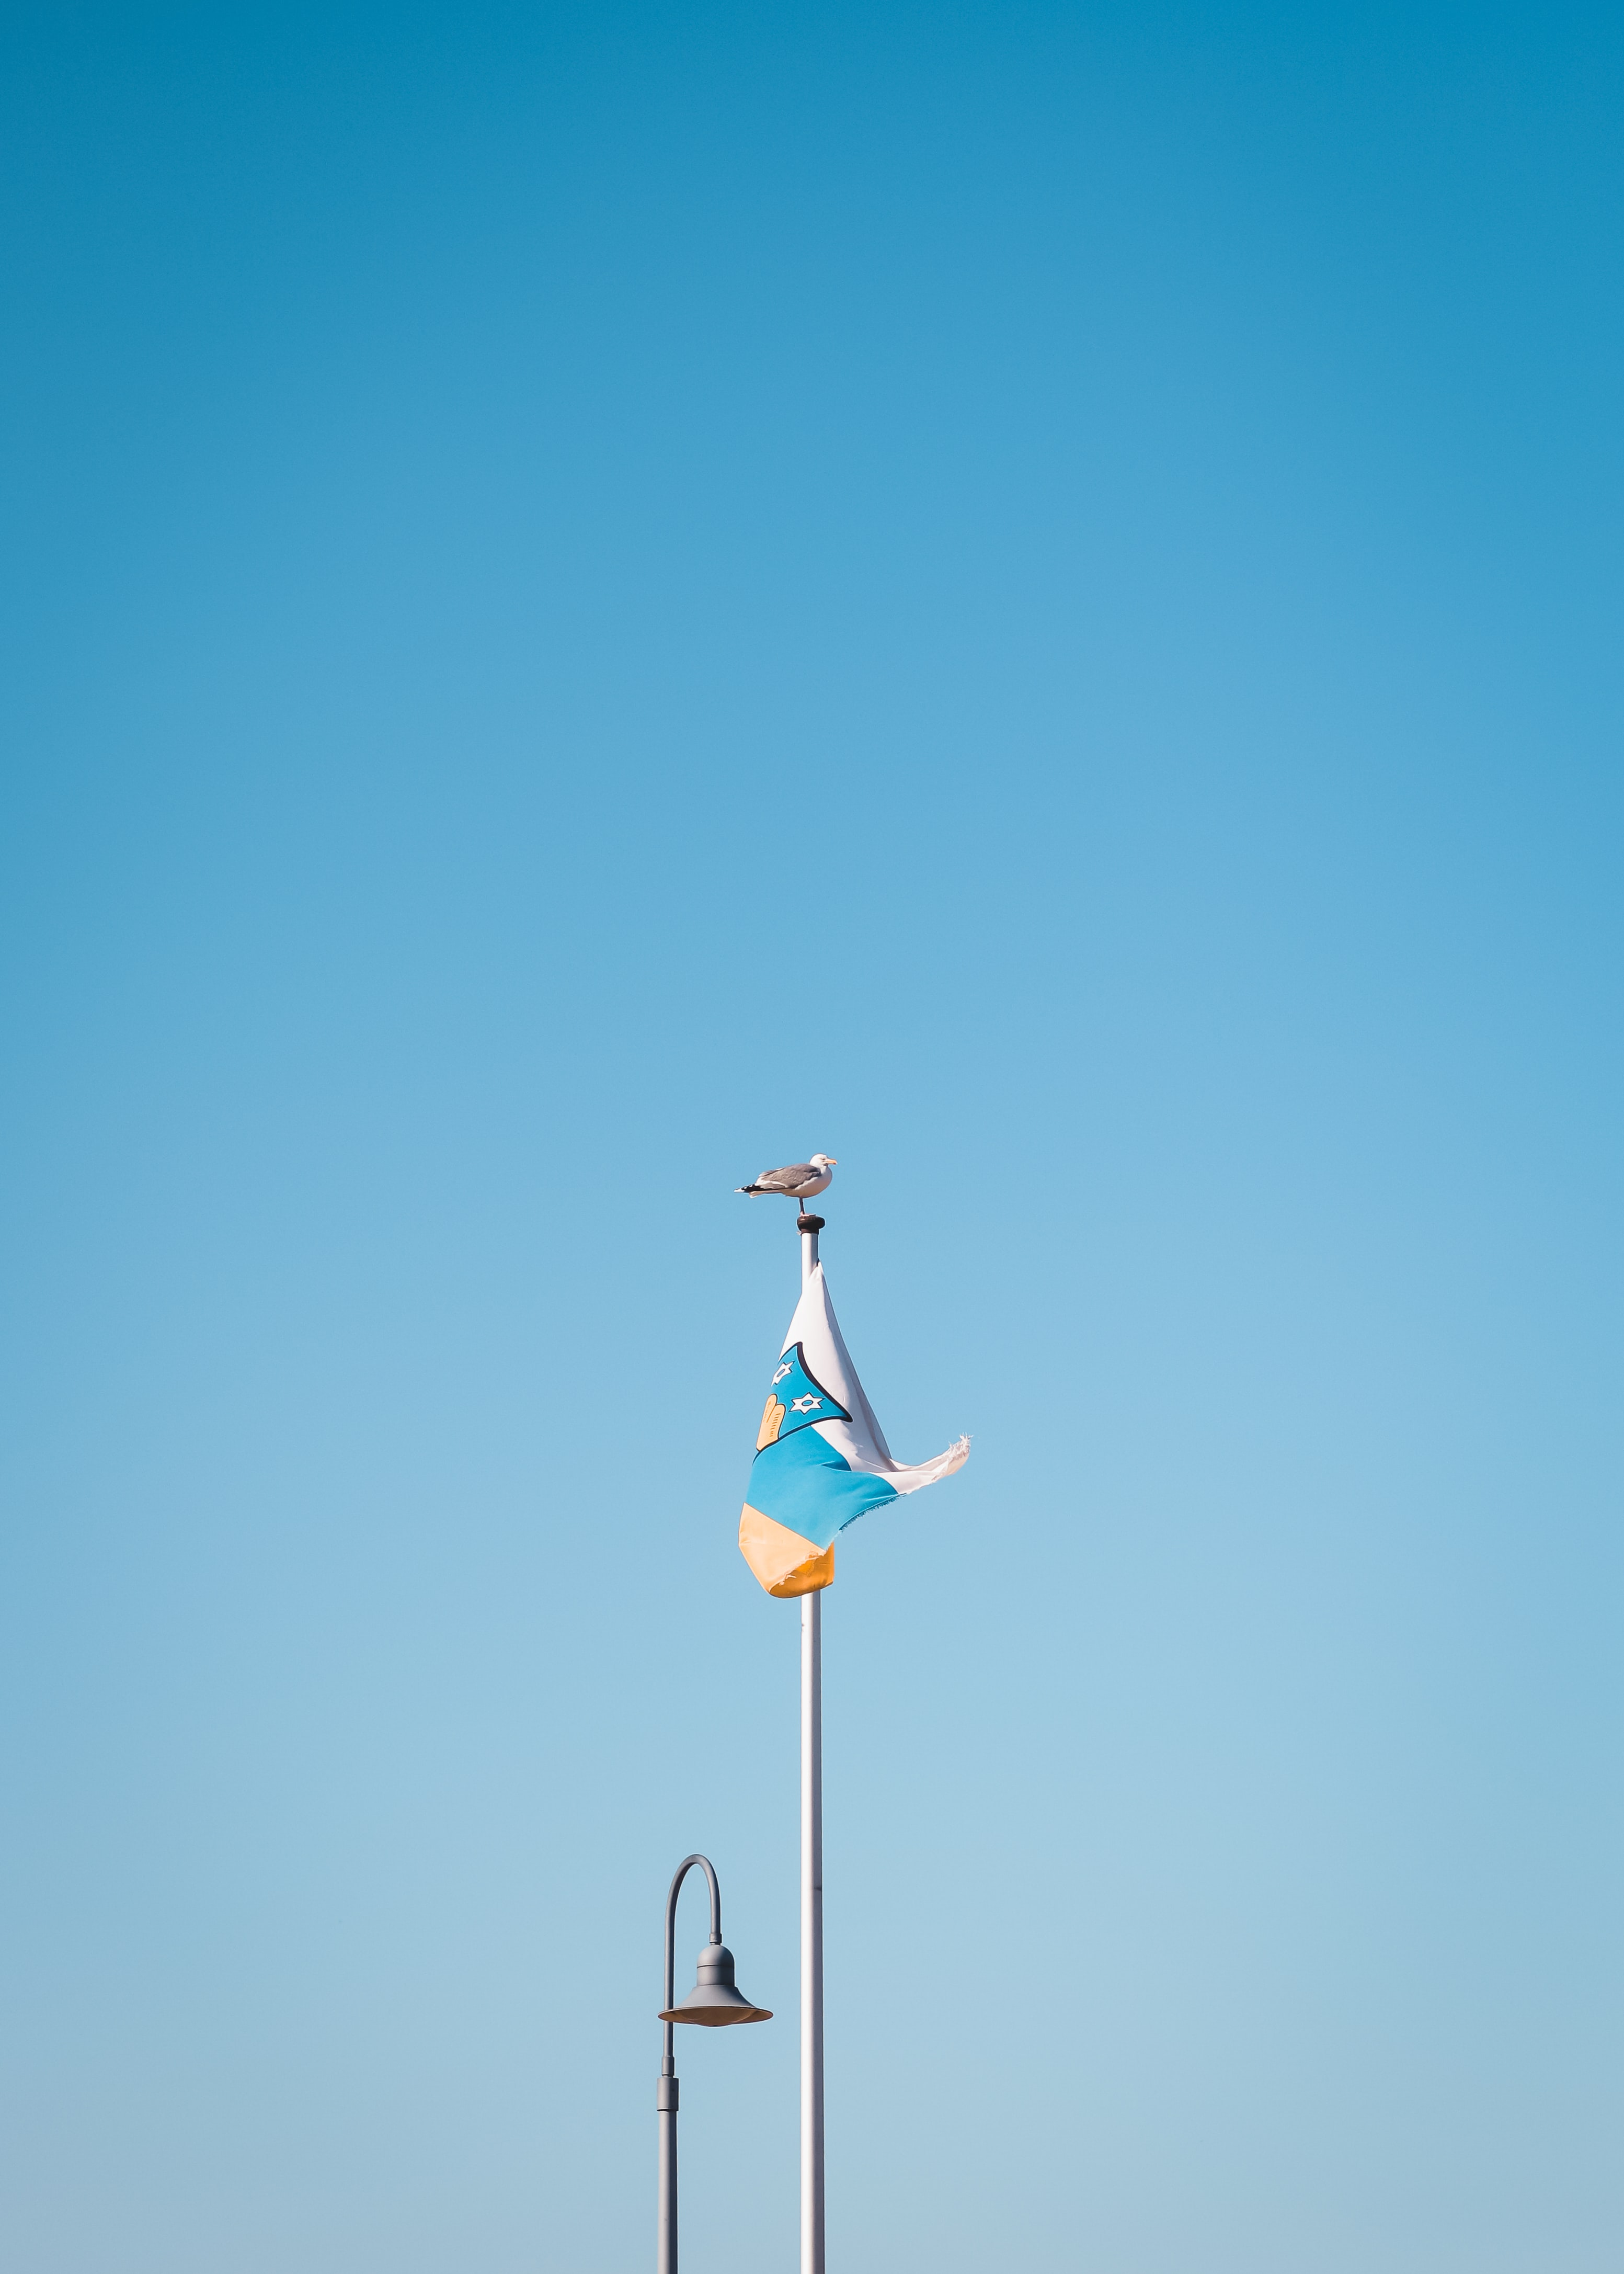 bird perched on flag pole with flag during day